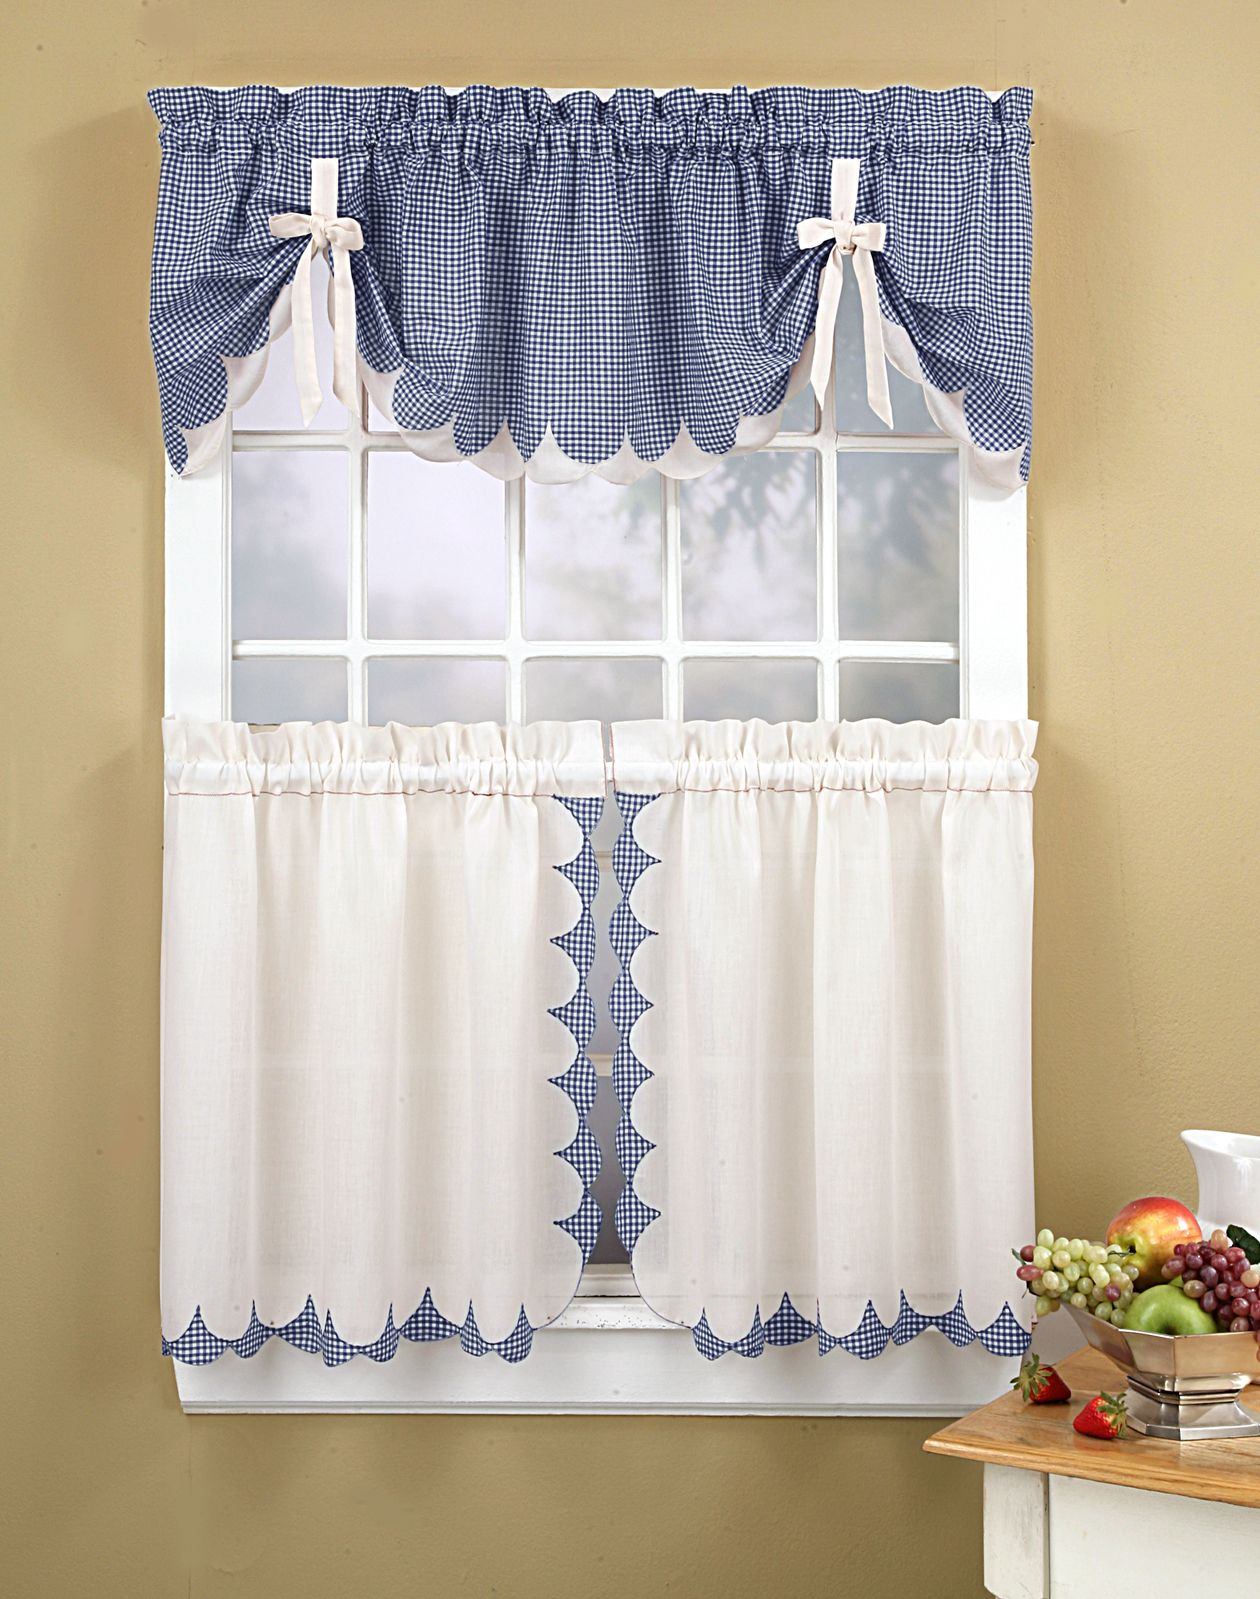 Kitchen Curtains  Tabitha 3Piece Kitchen Curtain Tier